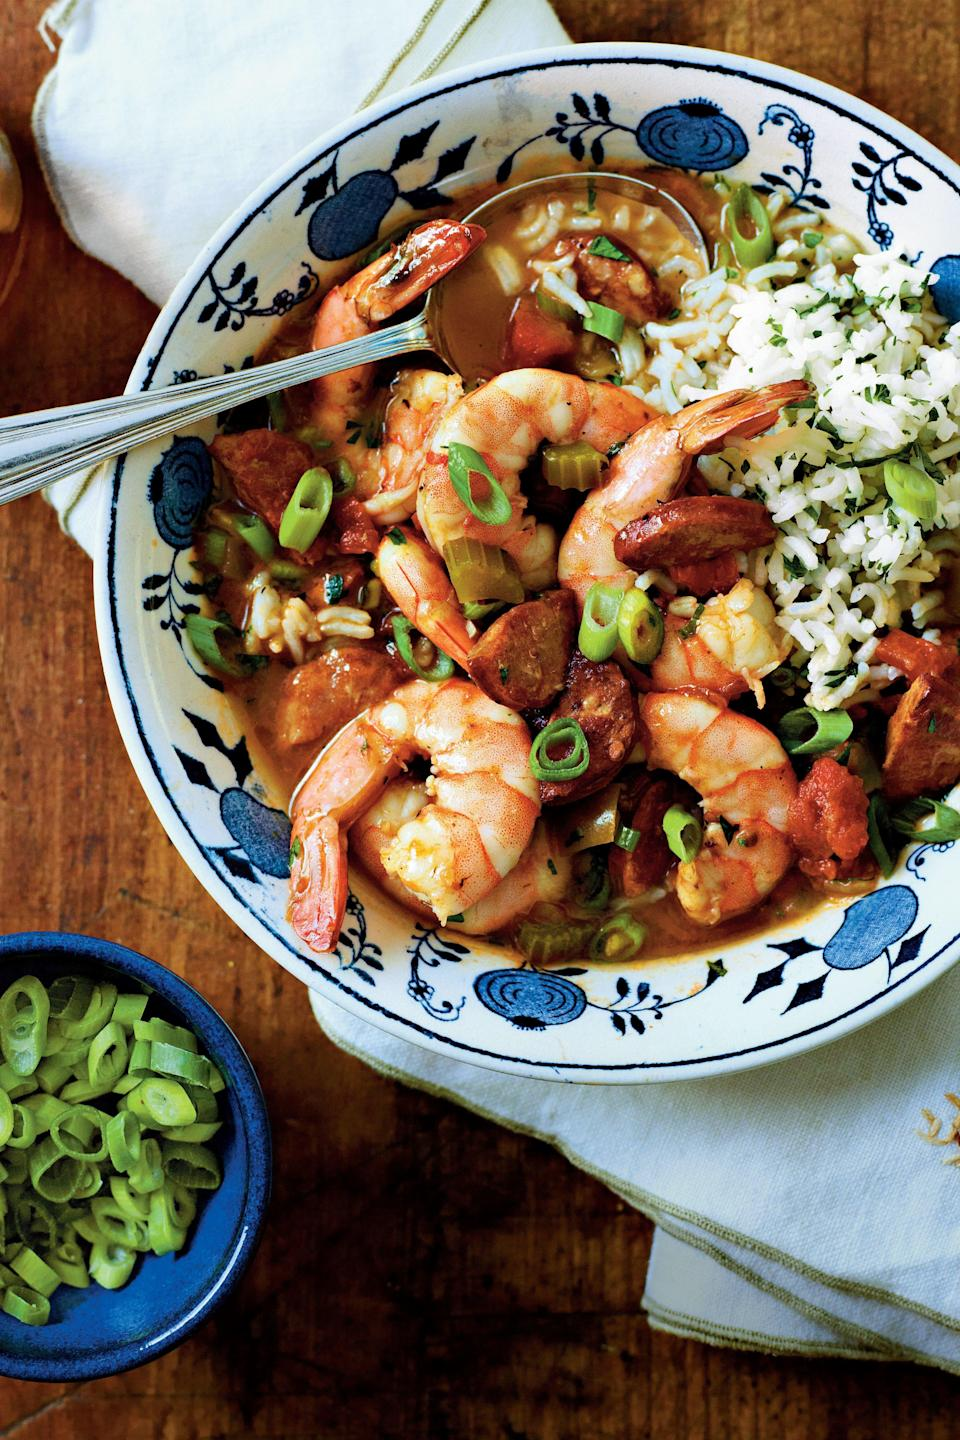 """<p><strong>Recipe:</strong> <a href=""""https://www.southernliving.com/recipes/shrimp-sausage-gumbo-recipe"""" rel=""""nofollow noopener"""" target=""""_blank"""" data-ylk=""""slk:Shrimp-and-Sausage Gumbo"""" class=""""link rapid-noclick-resp""""><strong>Shrimp-and-Sausage Gumbo</strong></a></p> <p>Enjoy a smoky and spicy classic that takes just a couple of minutes to prepare. When it's ready, serve over a bed of <a href=""""http://www.myrecipes.com/recipe/herbed-rice-50400000124739/"""" rel=""""nofollow noopener"""" target=""""_blank"""" data-ylk=""""slk:herbed rice"""" class=""""link rapid-noclick-resp"""">herbed rice</a>.</p>"""